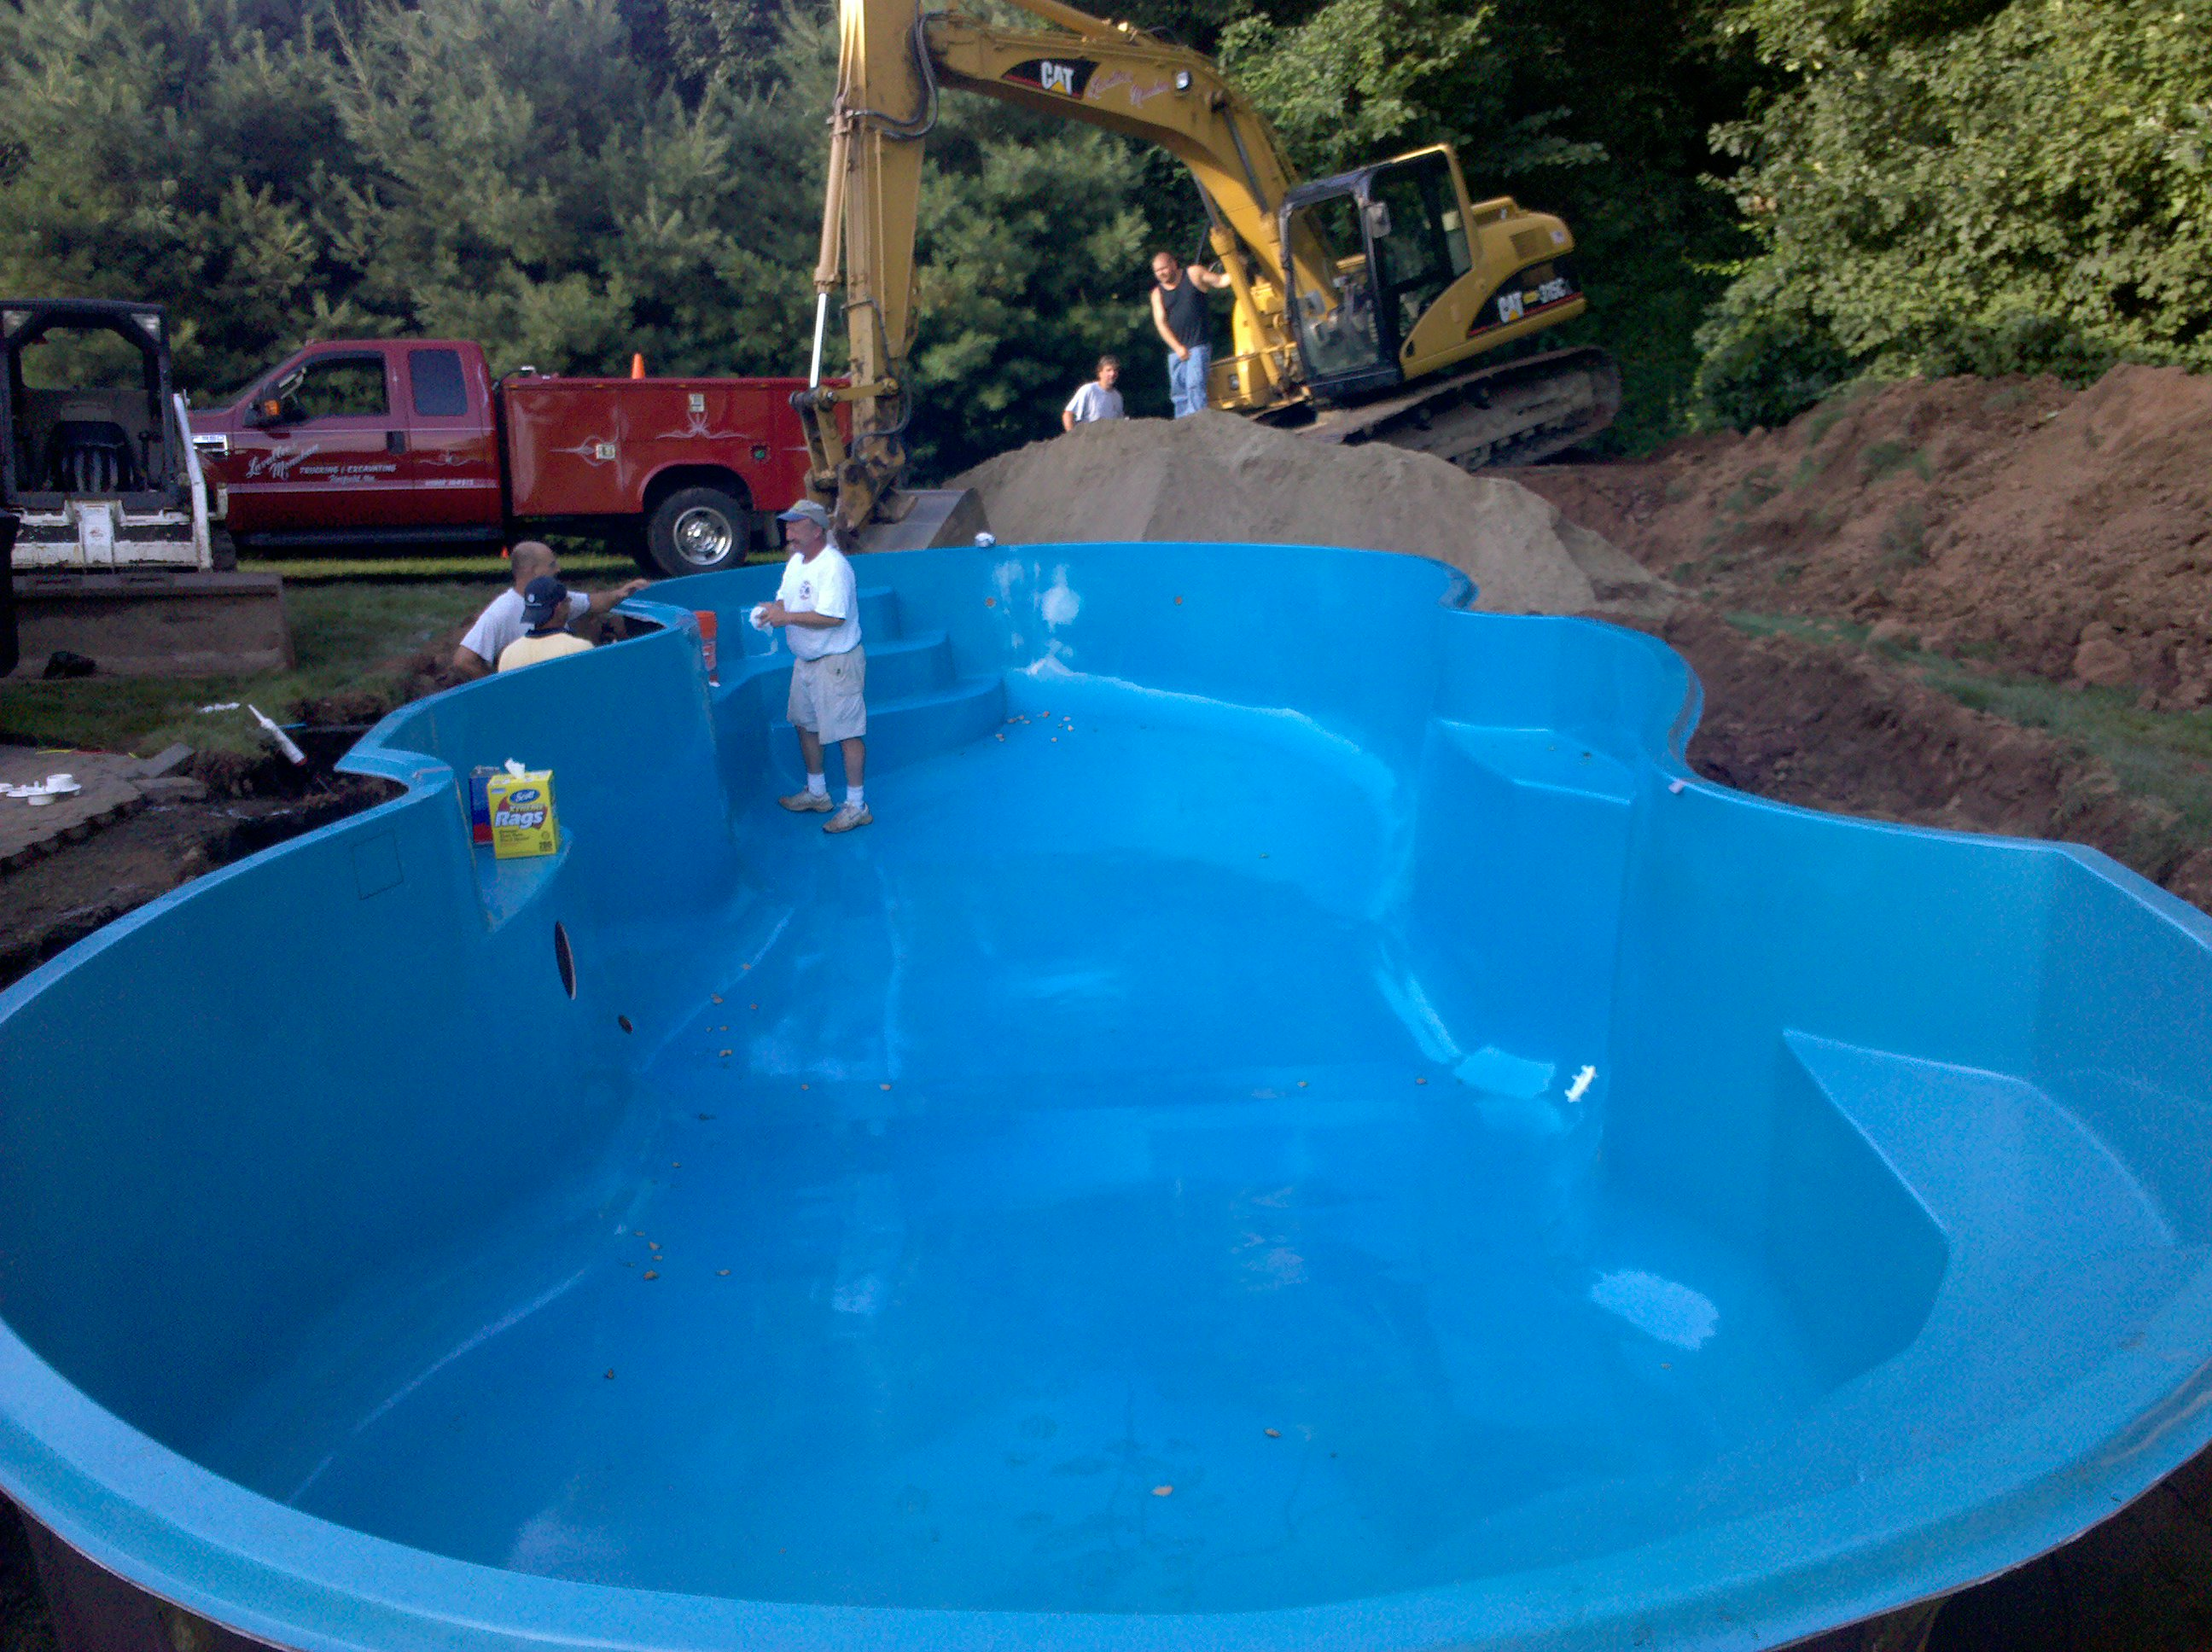 How To Install A San Juan Fiberglass Pool In Just 2 Days Preferred Properties Landscaping